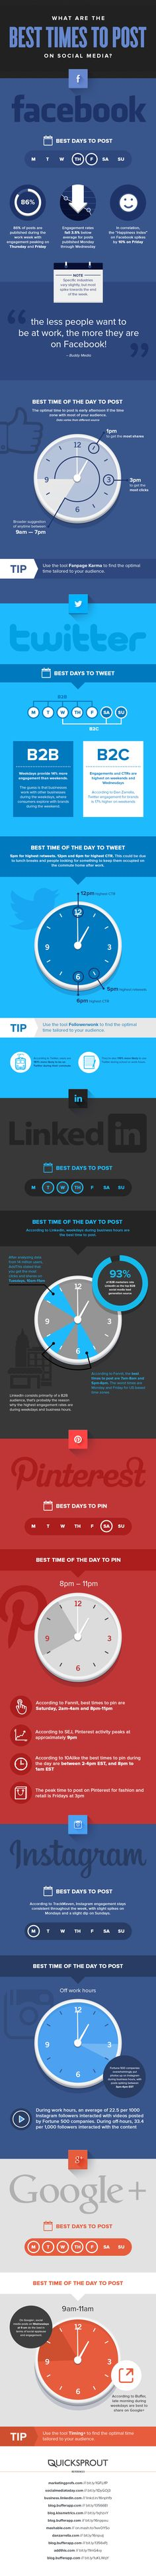 What Are the Best Times to Post on Social Media? [INFOGRAPHIC] | Social Media Today